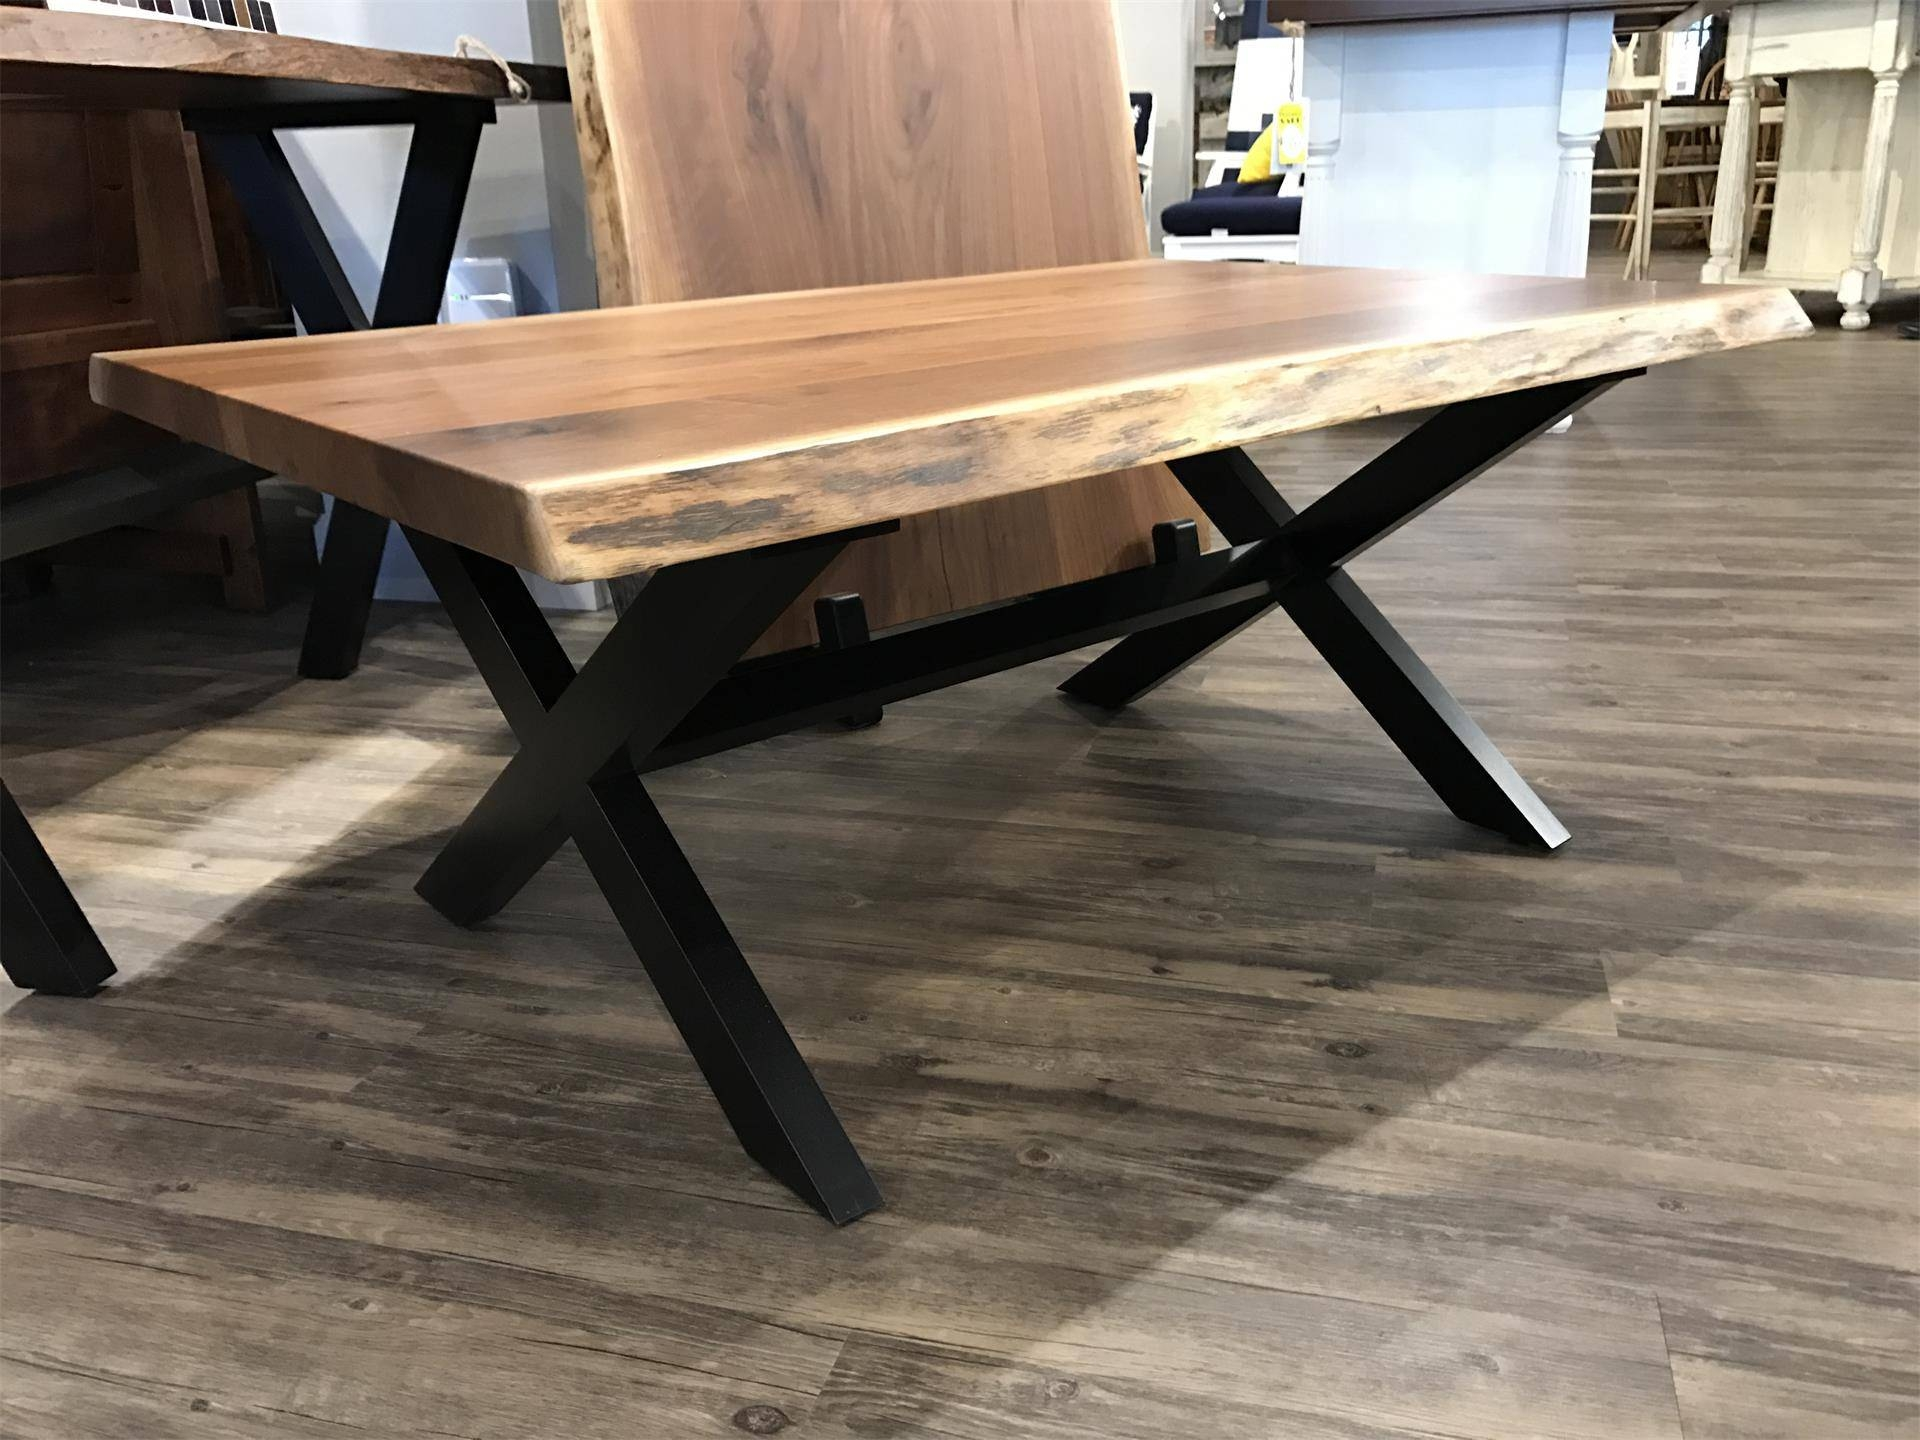 In Stock Live Edge Coffee Table From Dutchcrafters Amish Furniture with regard to Live Edge Coffee Tables (Image 10 of 15)